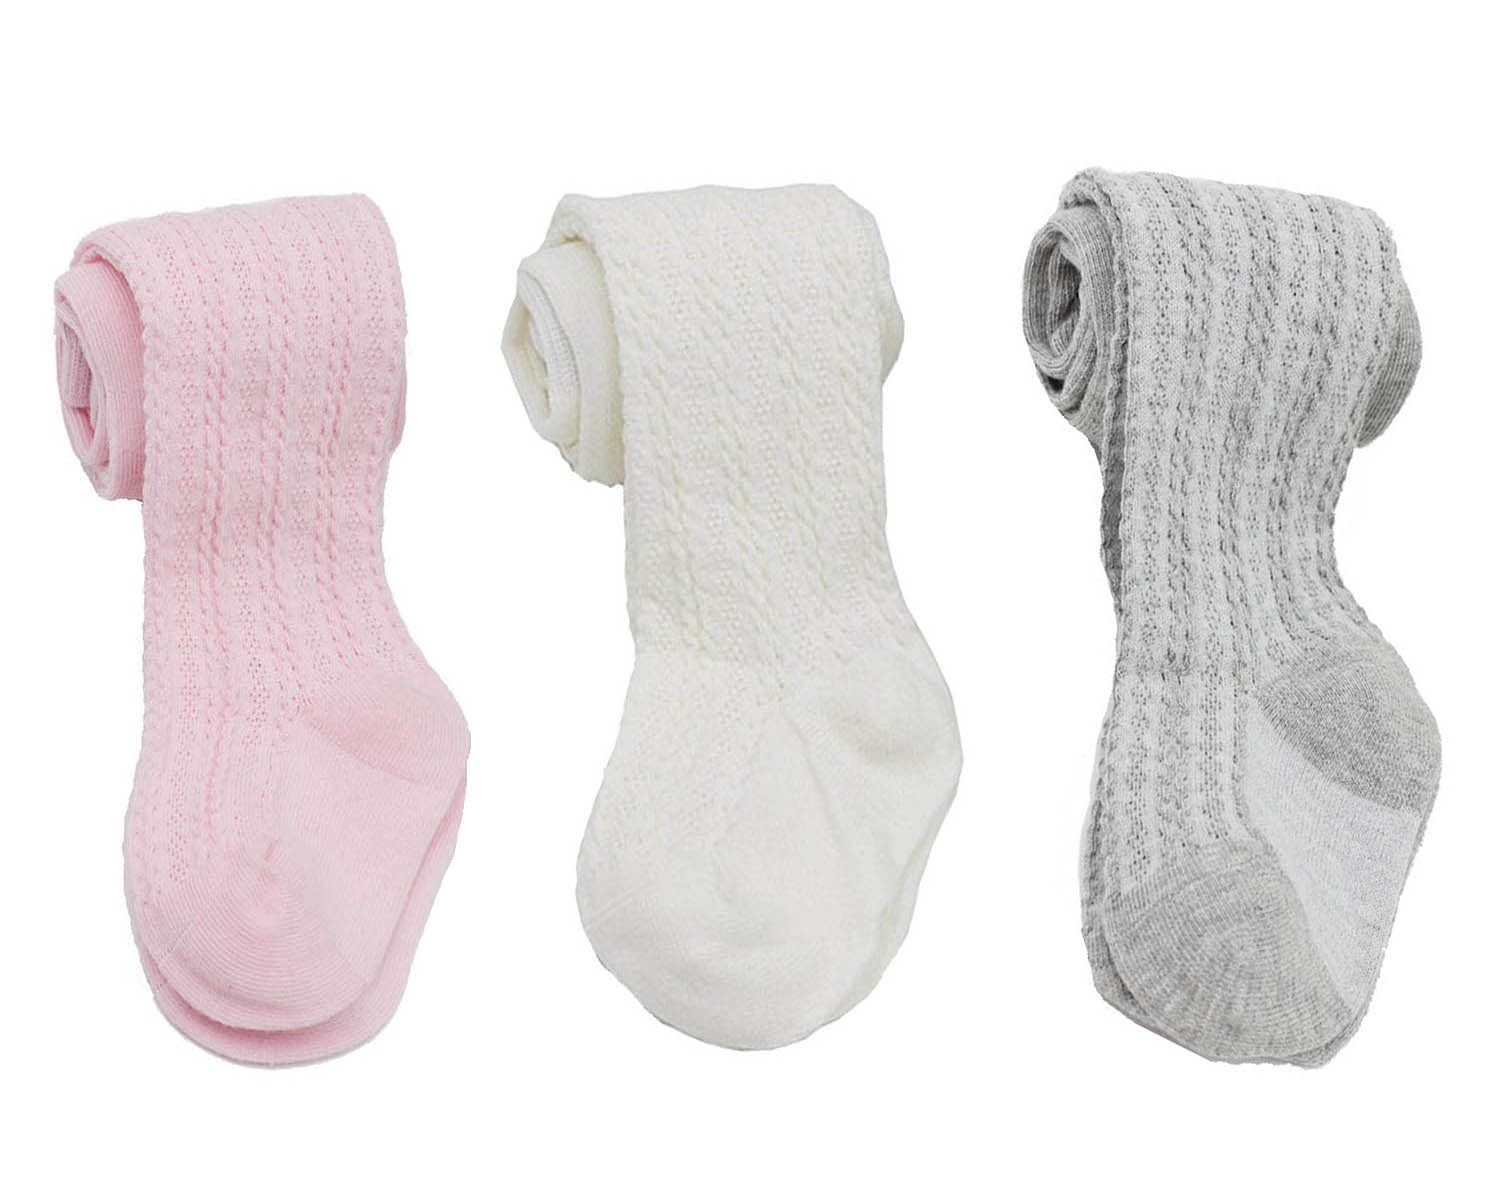 YallFairy 3 PACK Baby Kids Girls Cable Knit Tights Leggings Stocking Pants (5-6 years, white+pink+gray)